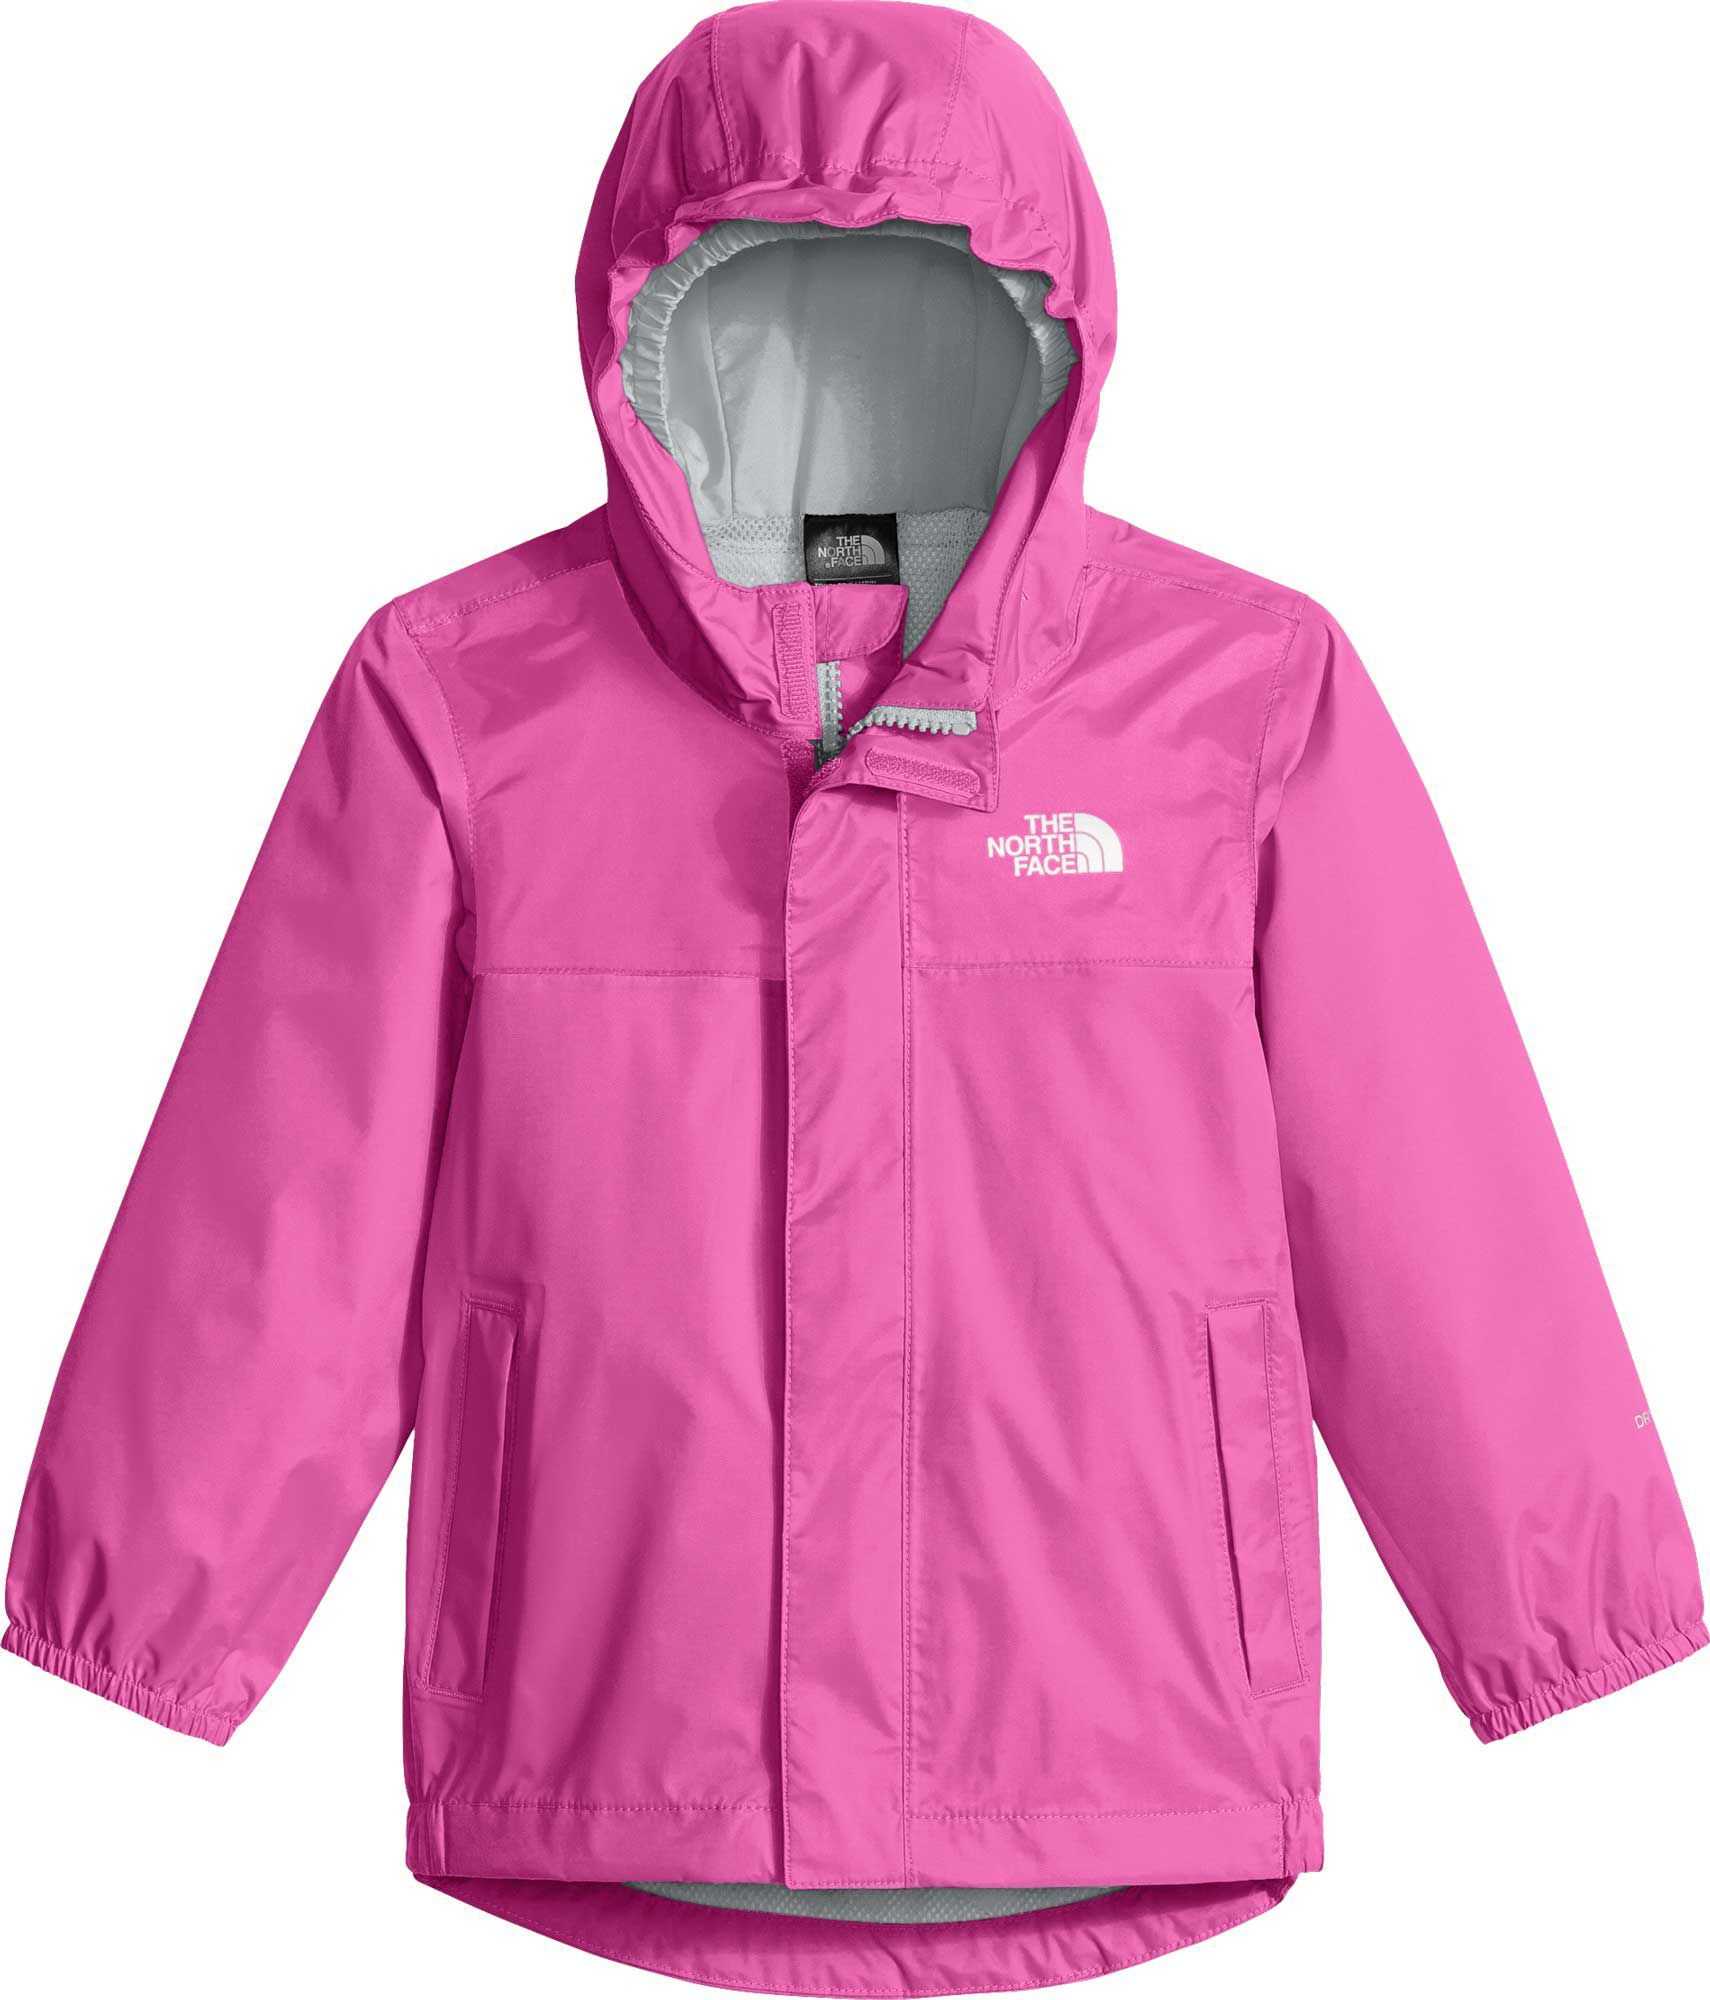 bdc49739ba49 The North Face Toddler s Tailout Rain Jacket